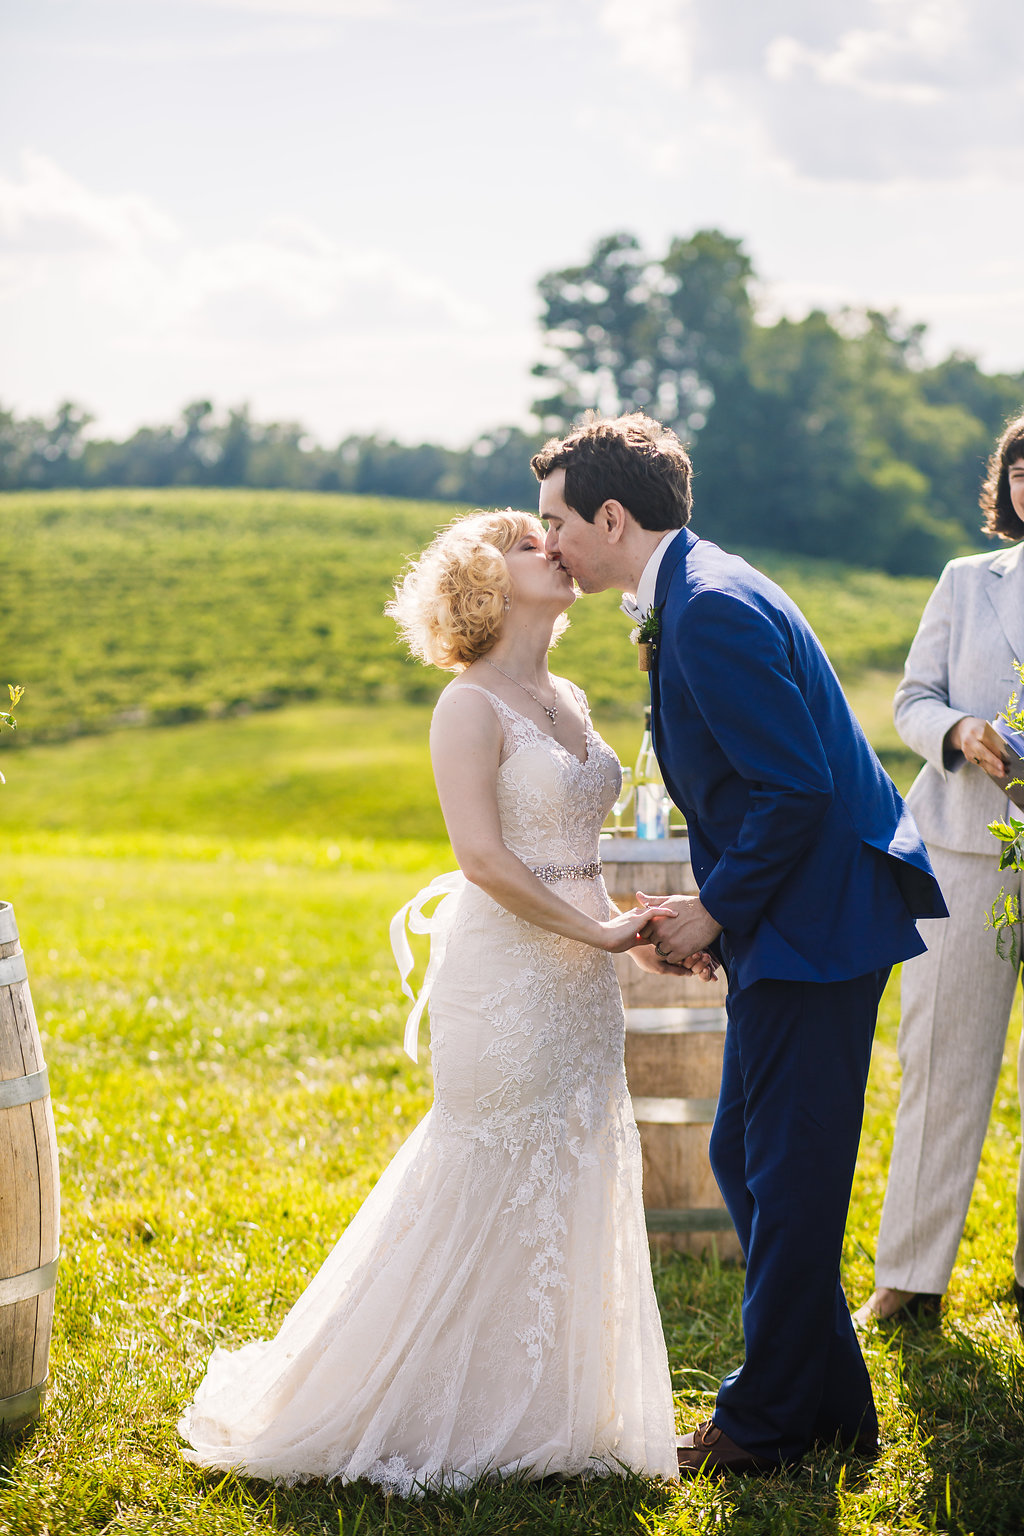 brielle-davis-events-photography-by-brea-linganore-winery-james-sarah-wedding-ceremony-first-kiss.jpg